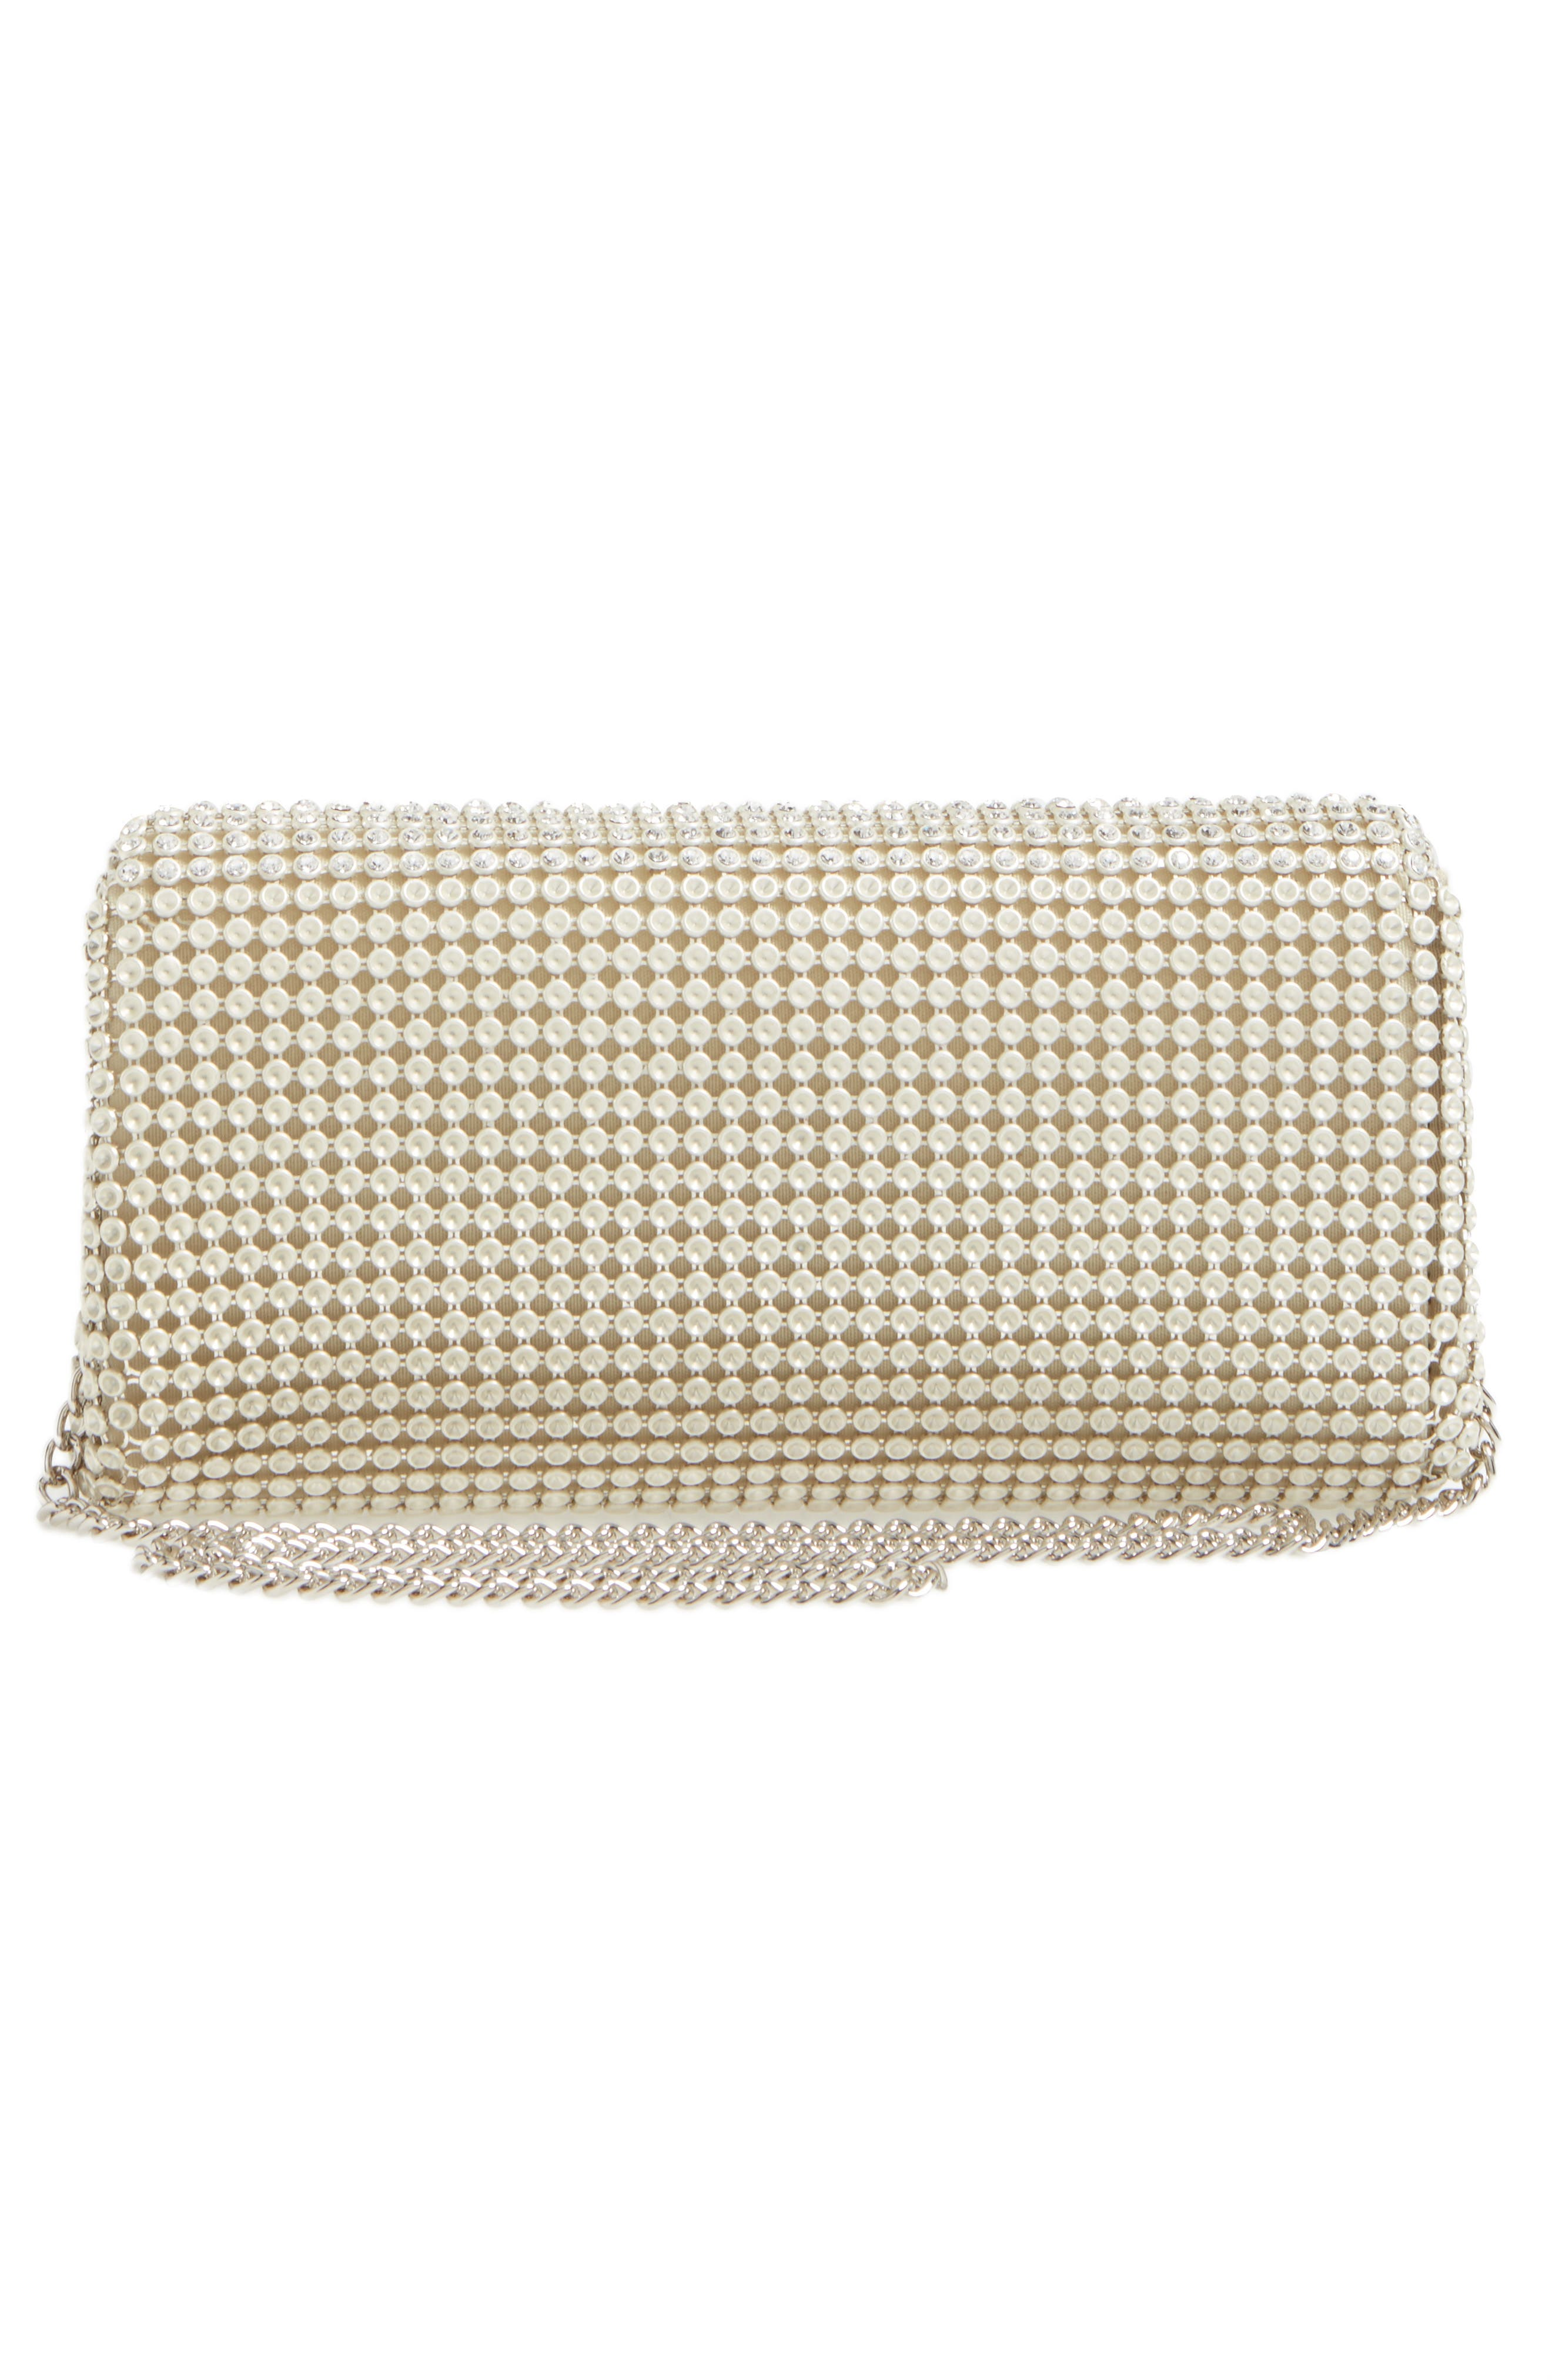 Crystal Triangle Clutch,                             Alternate thumbnail 2, color,                             Pearl